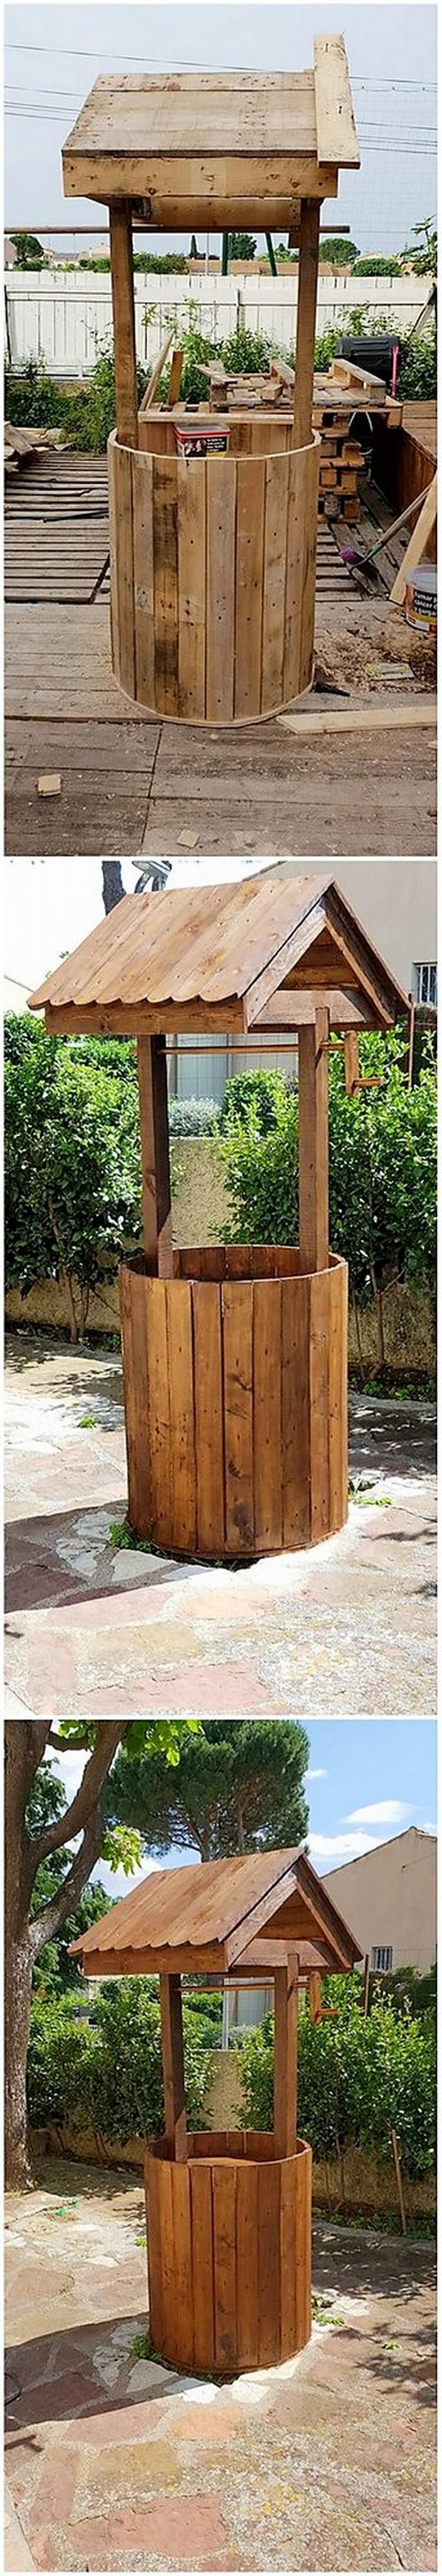 Pallet Wishing Well